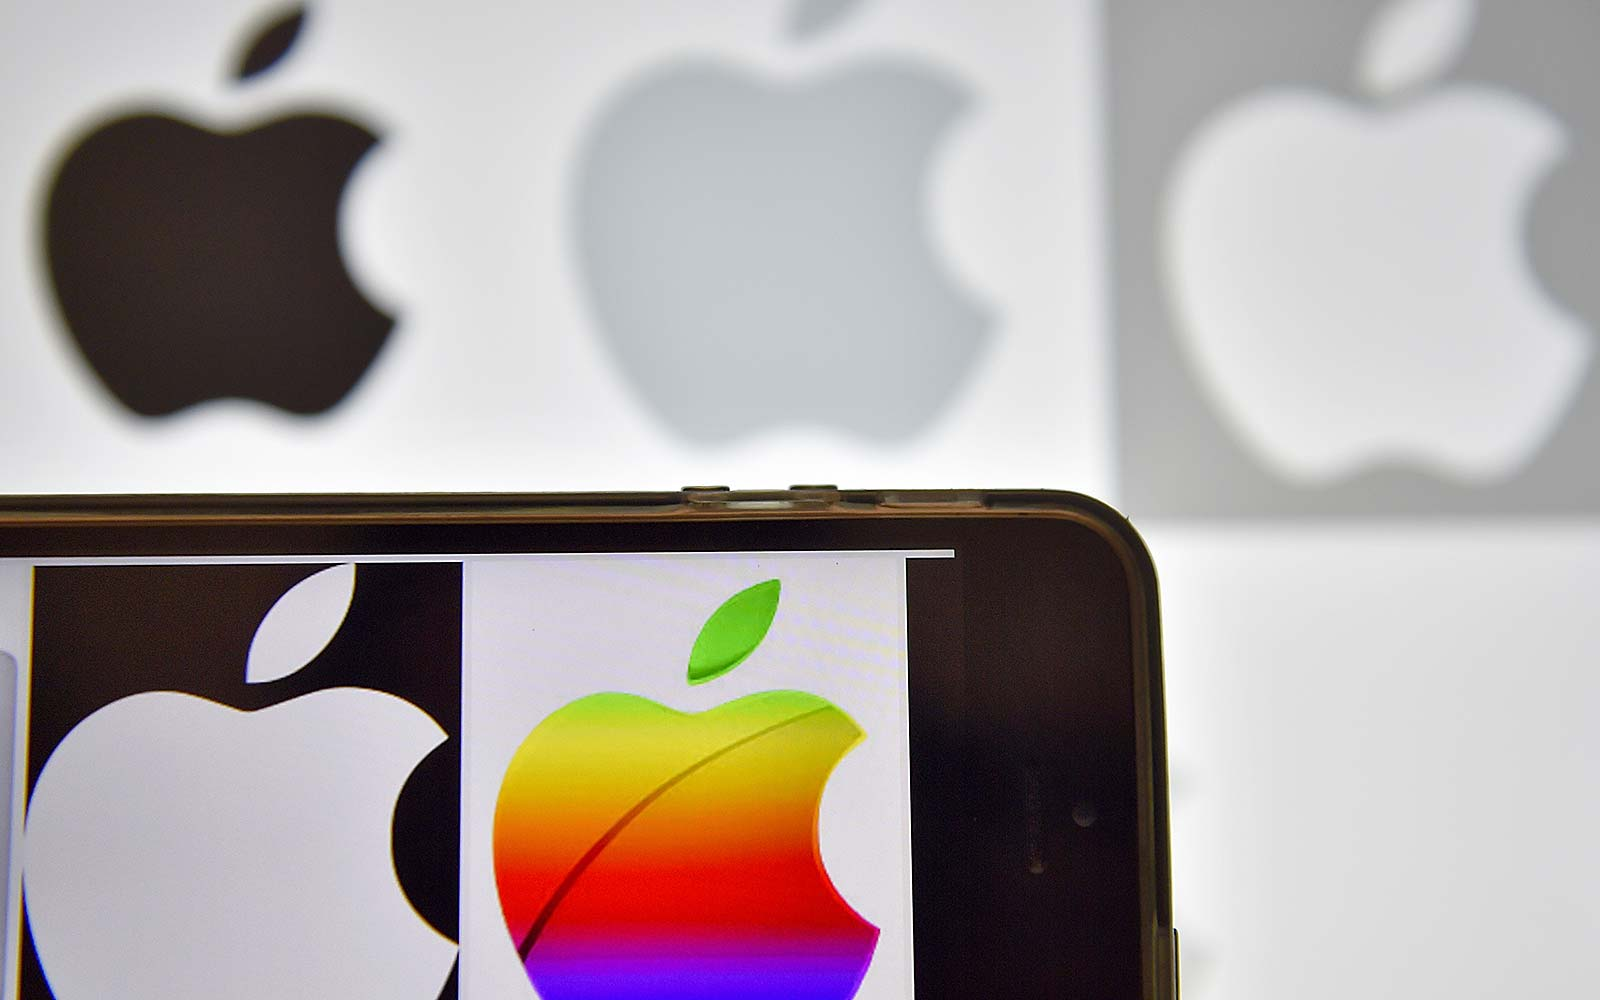 Apple Has Big Plans for the Next iPhone